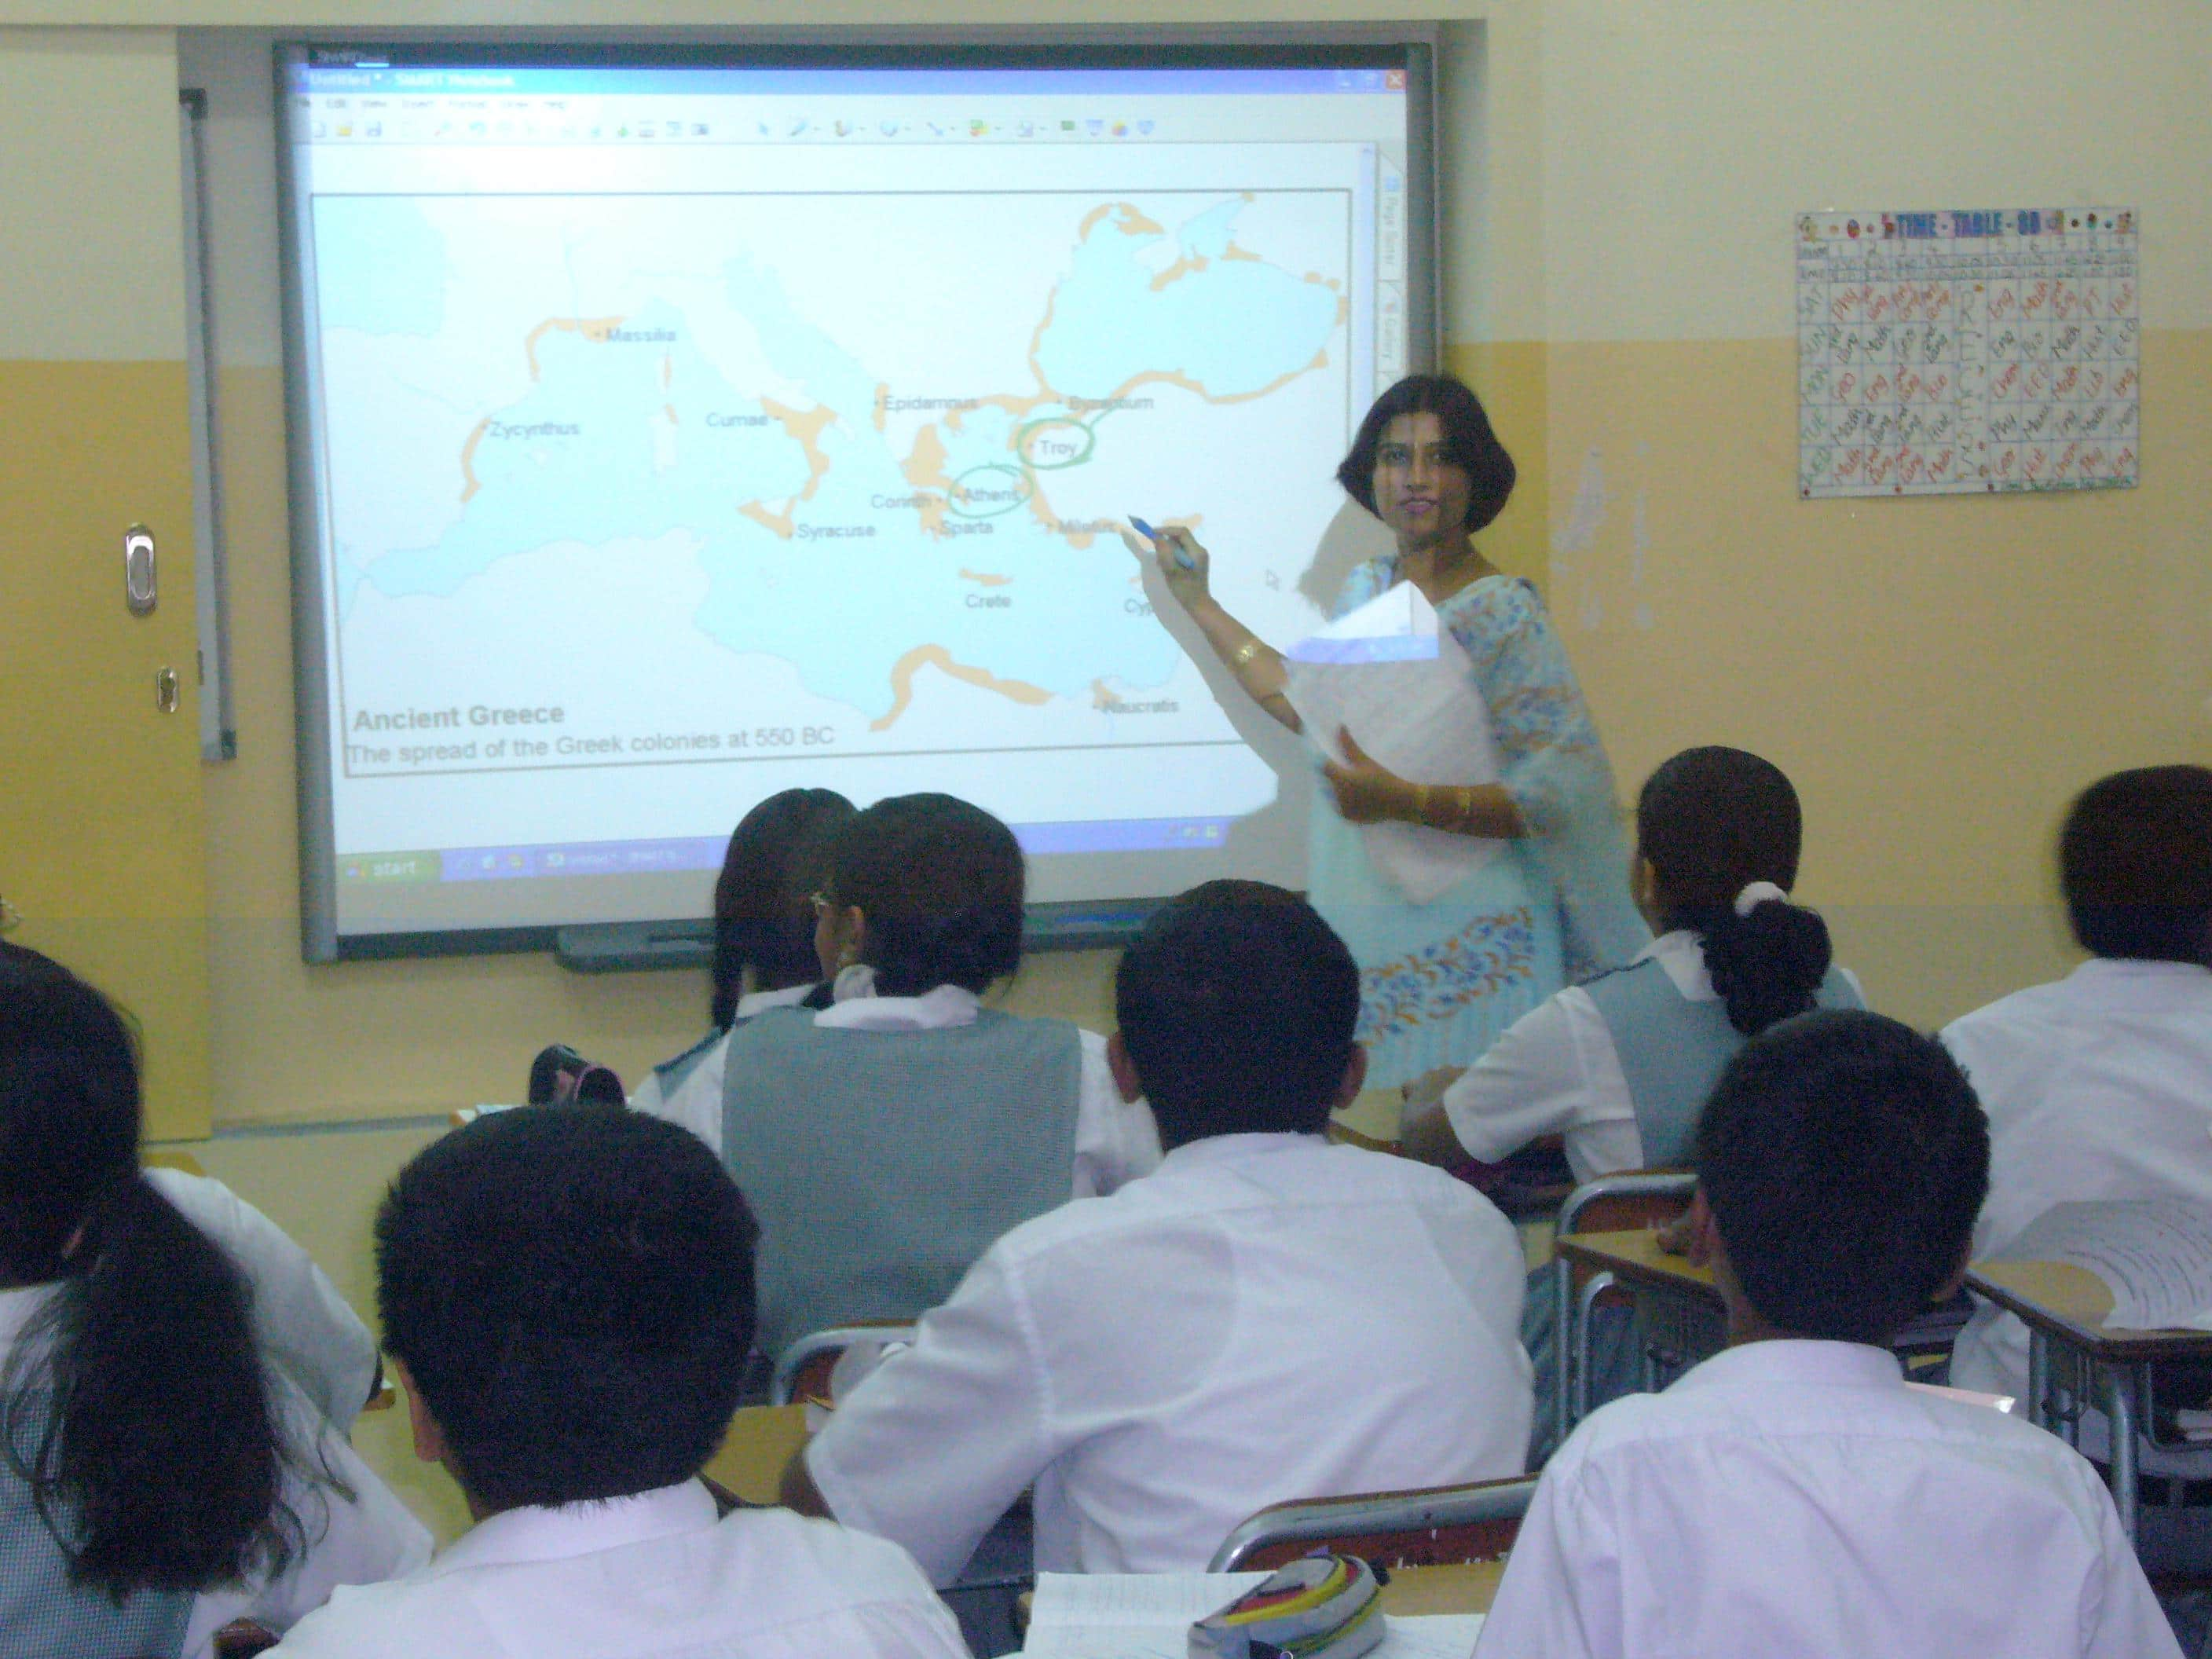 Modern Classroom Teaching Learning Resources ~ Schools to get smart classrooms in delhi